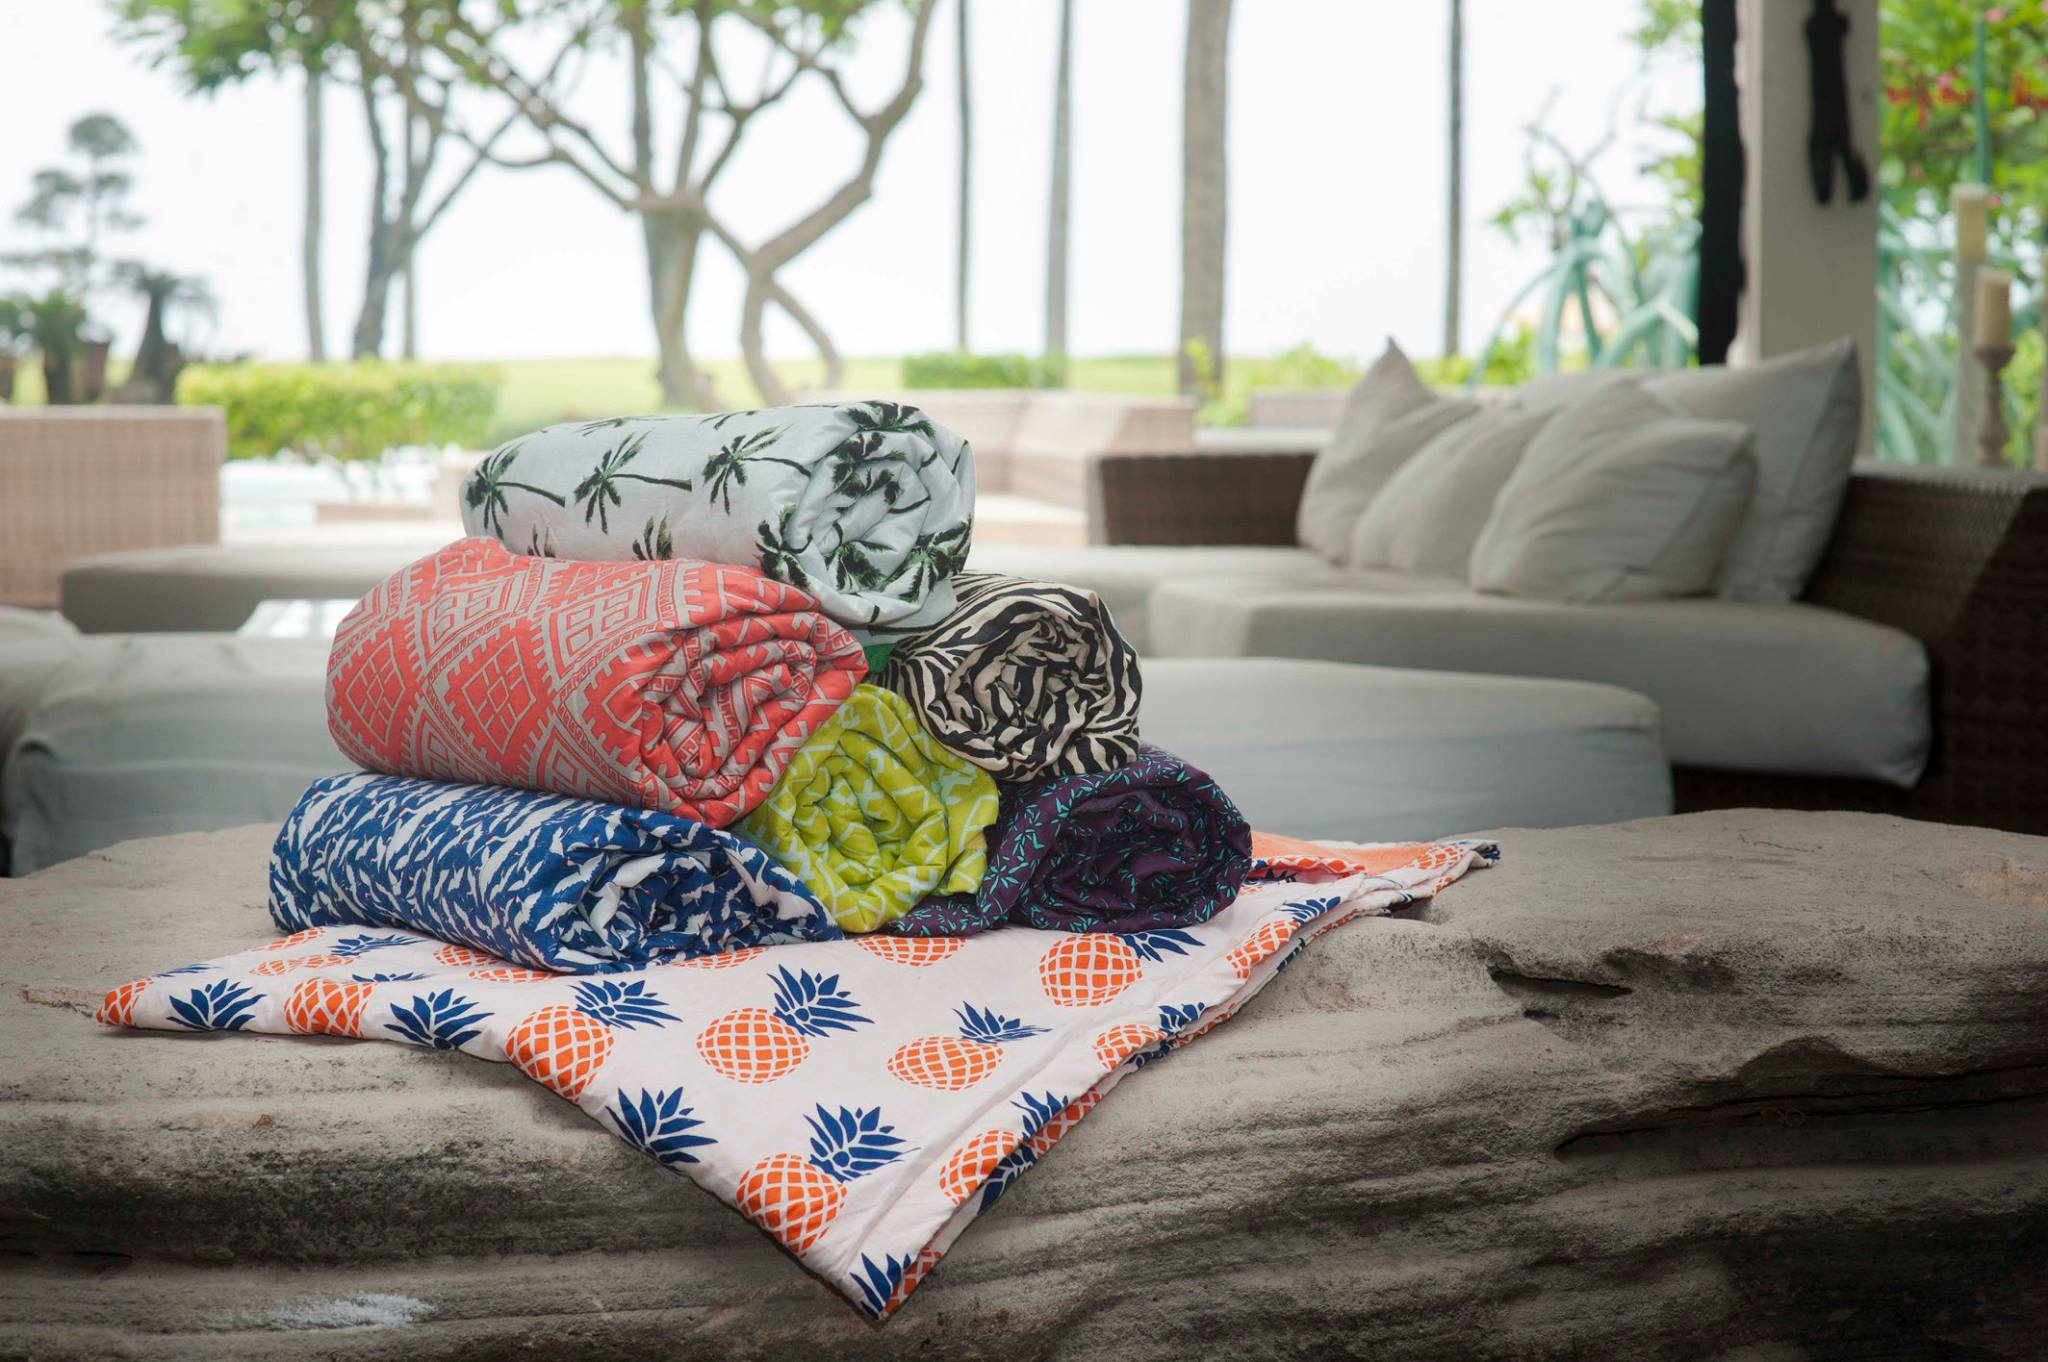 Inspired by Batik traditions and the Balinese sarong, each one of these towels is seriously a lovingly-made work of art. How on earth do we choose?